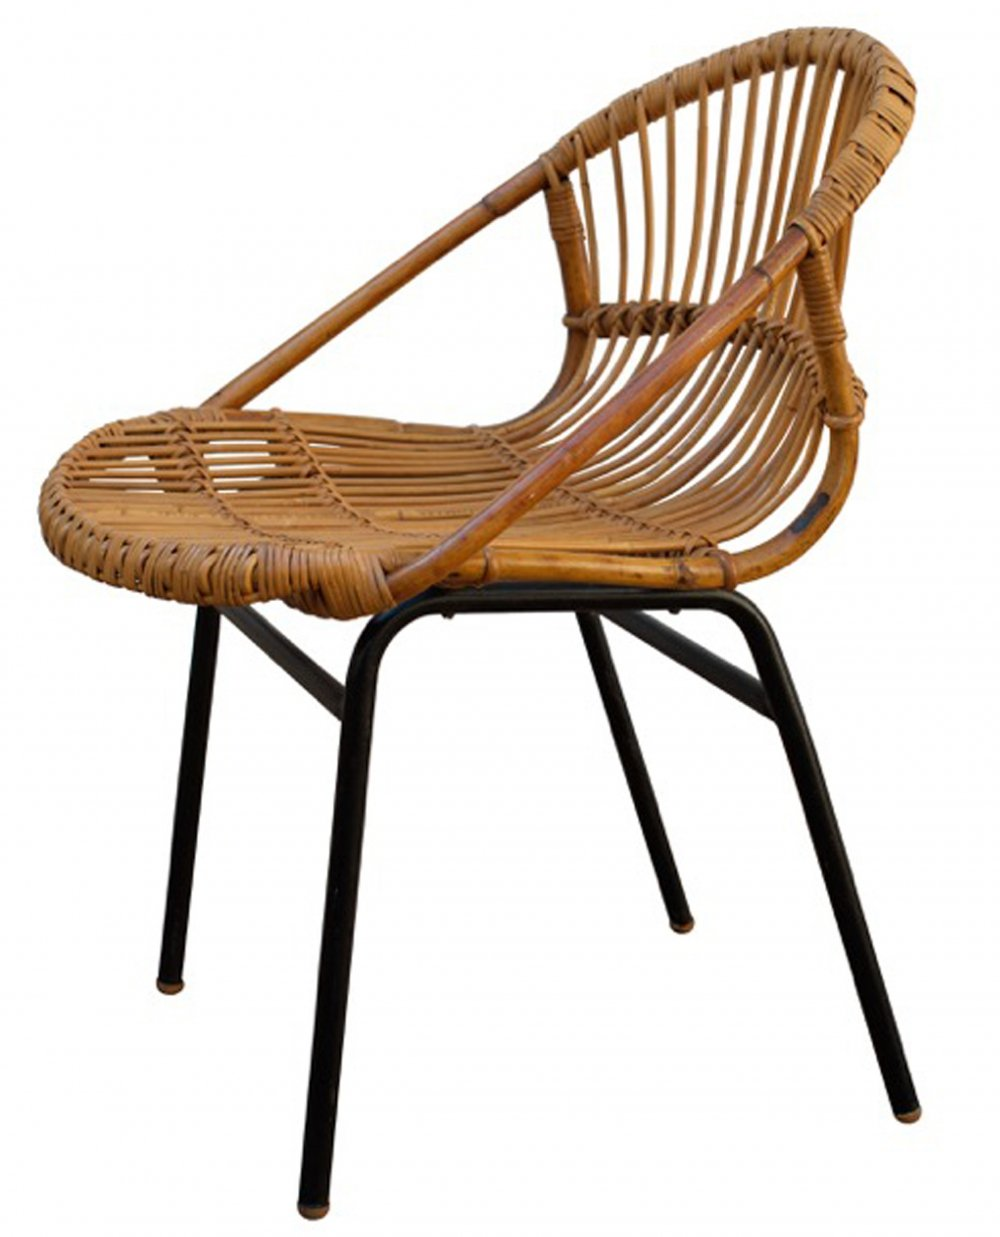 Rattan lounge chair by Alan Fuchs for experimental housing project Invalidovna